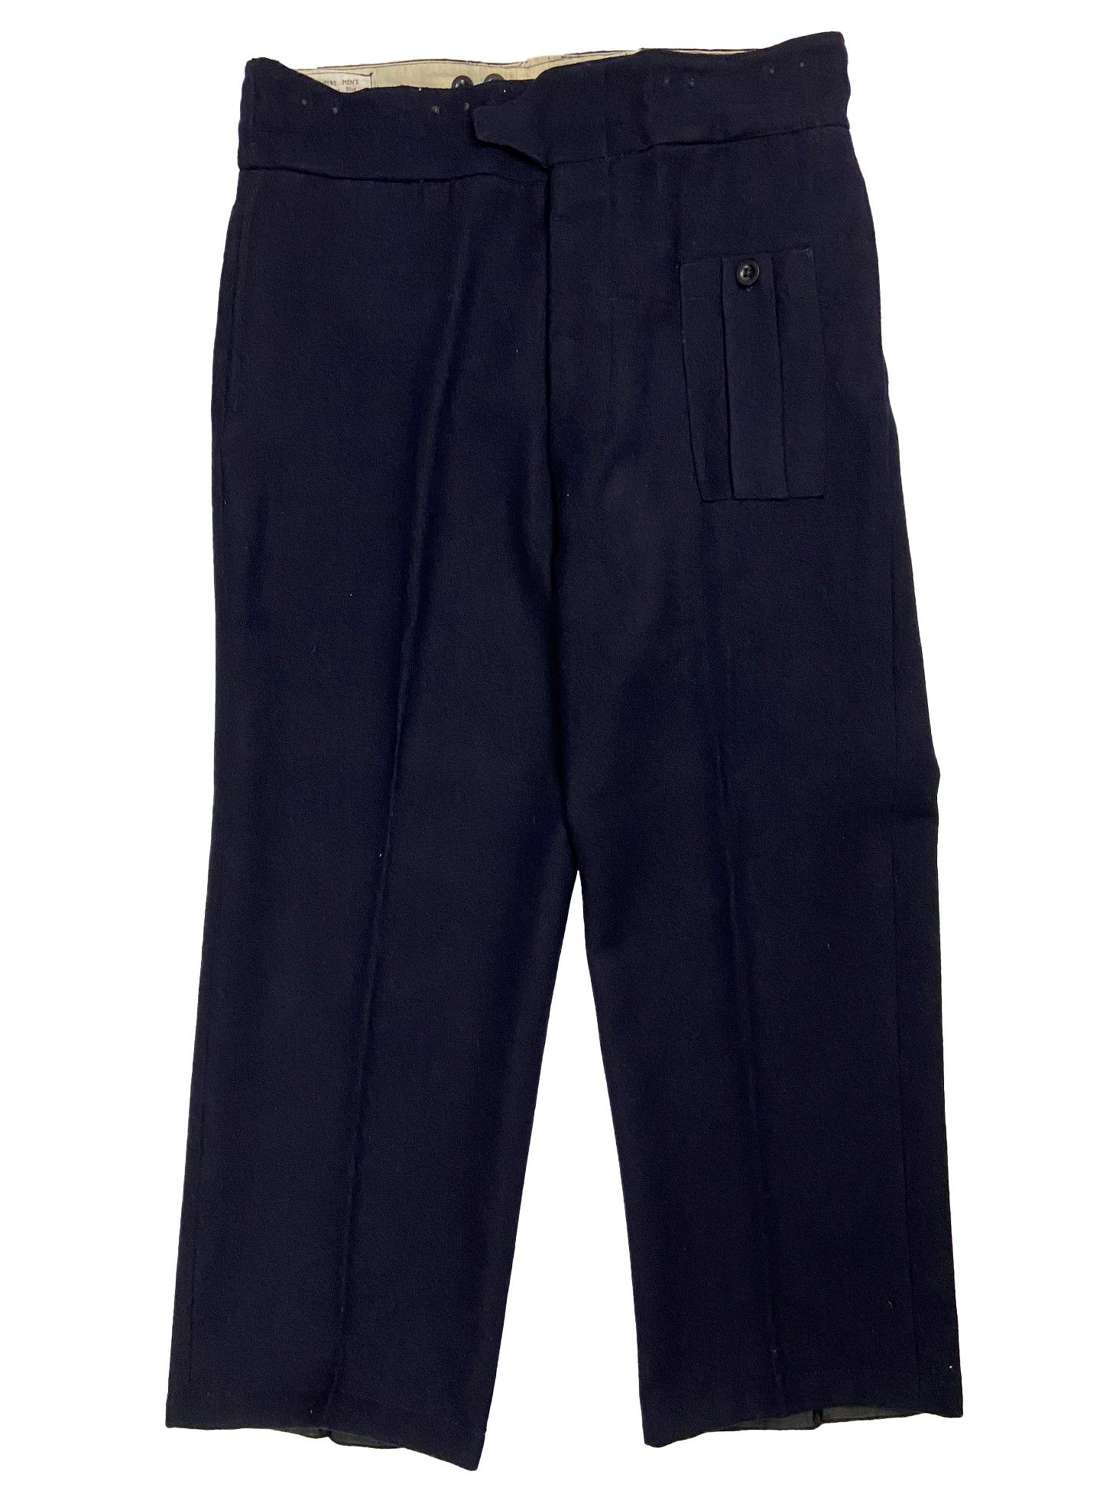 Original 1950s Civil Defence Battledress Trousers - Size 15